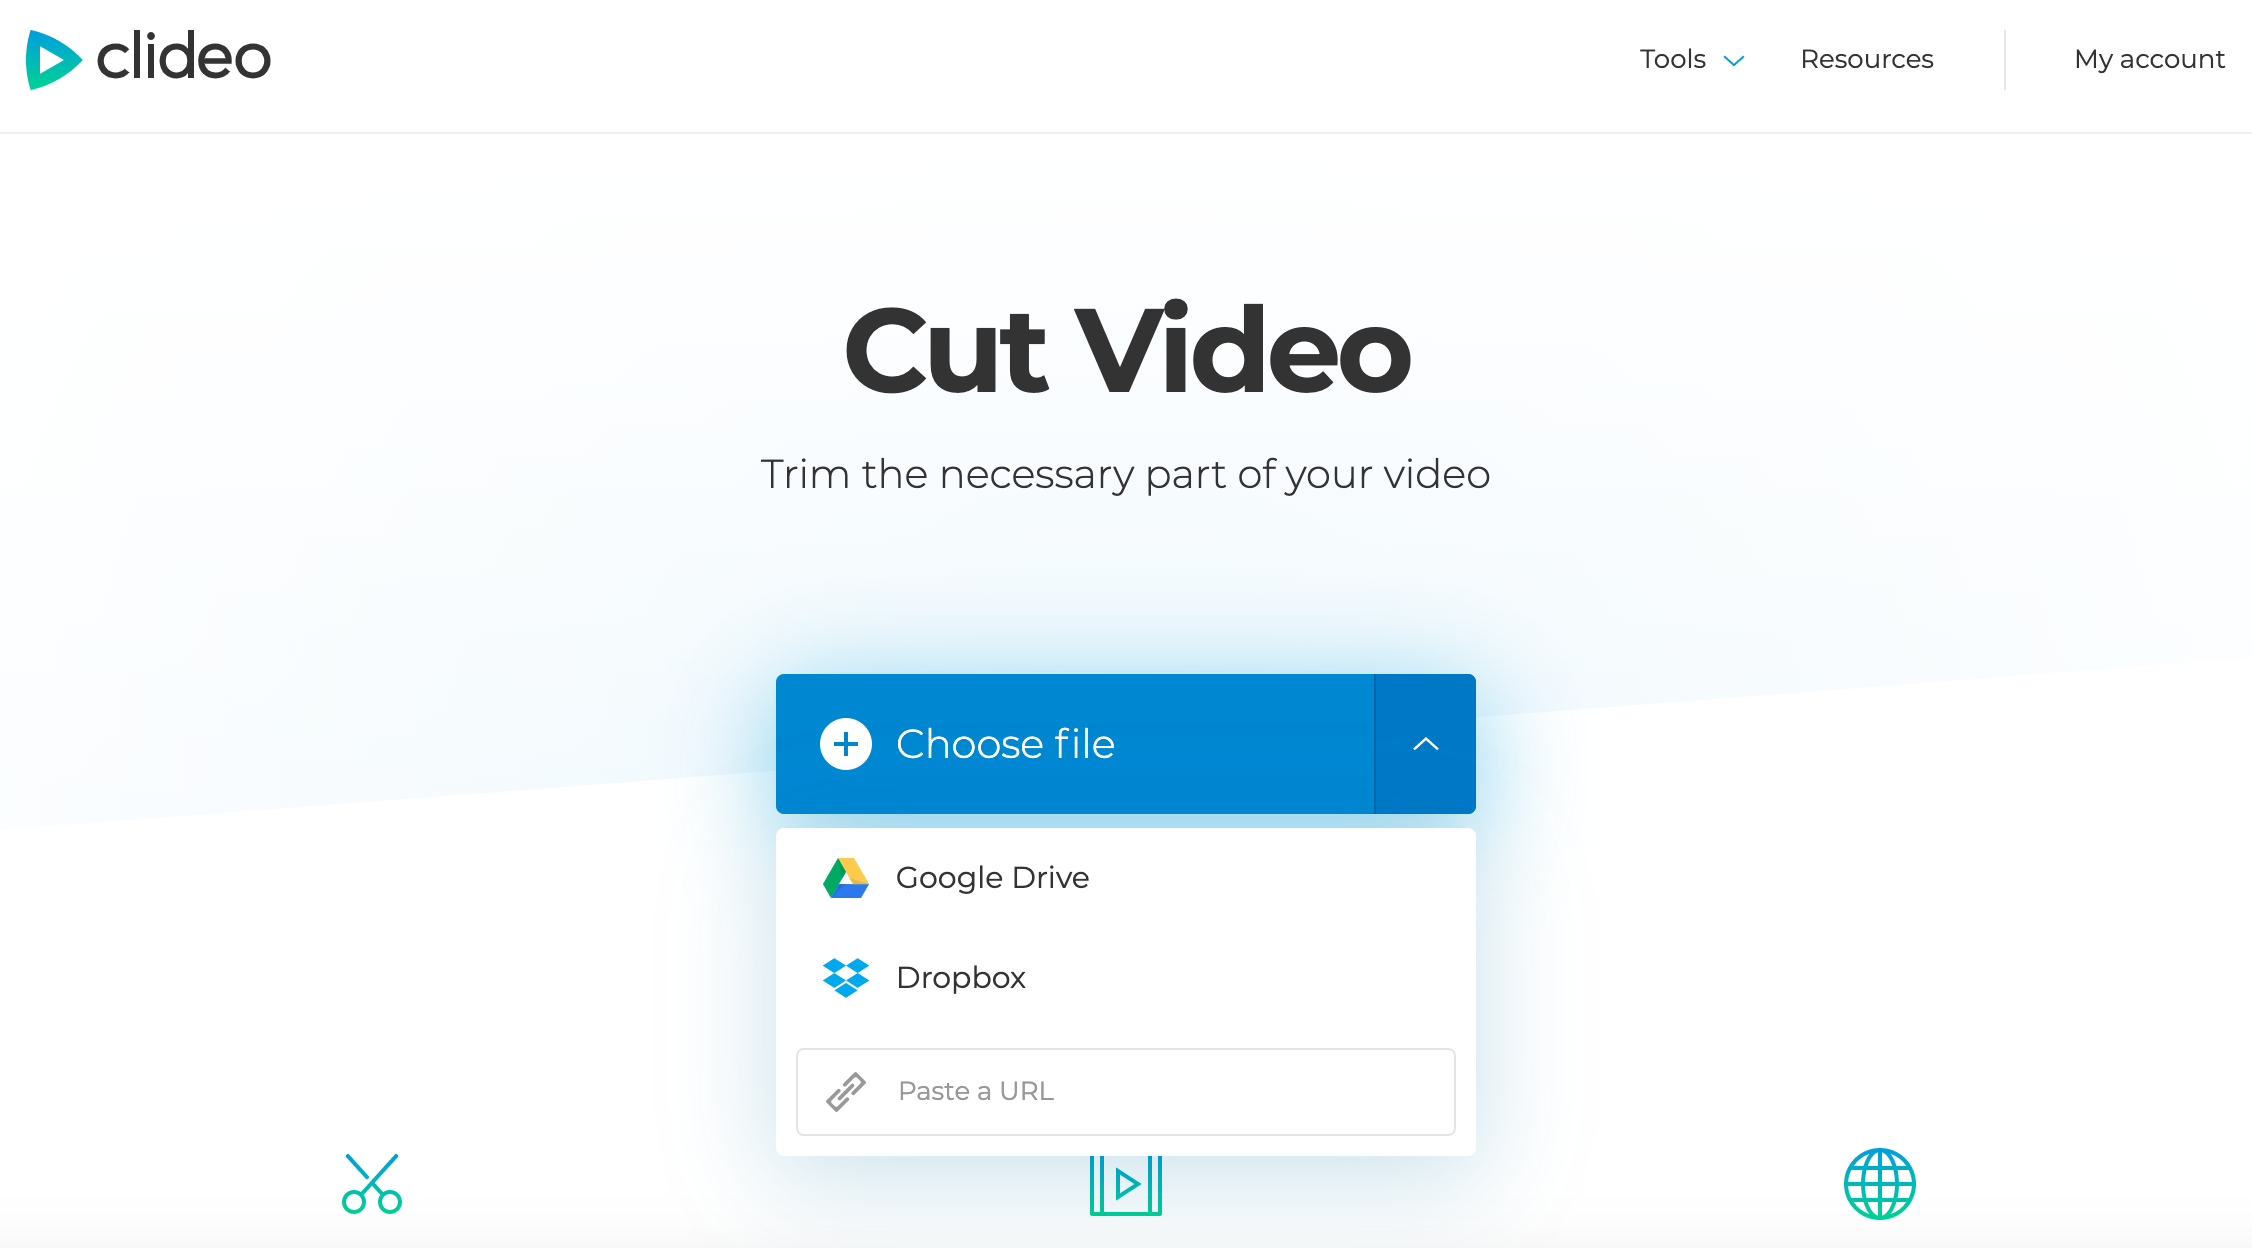 Upload a video you want to cut on iPhone